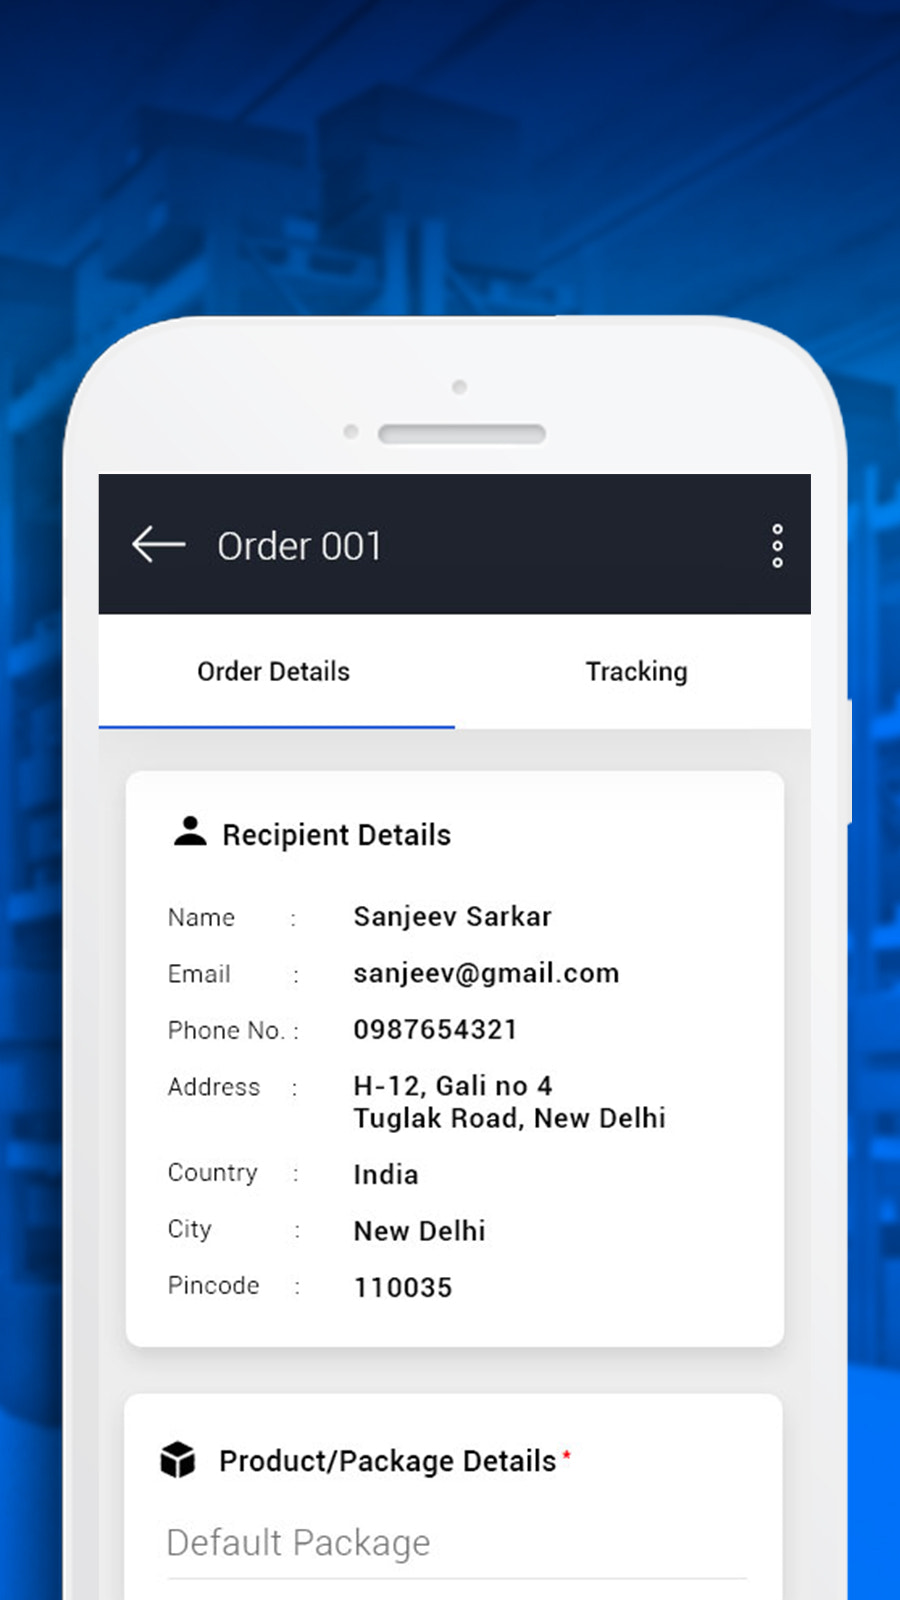 Order Details and Fulfilment